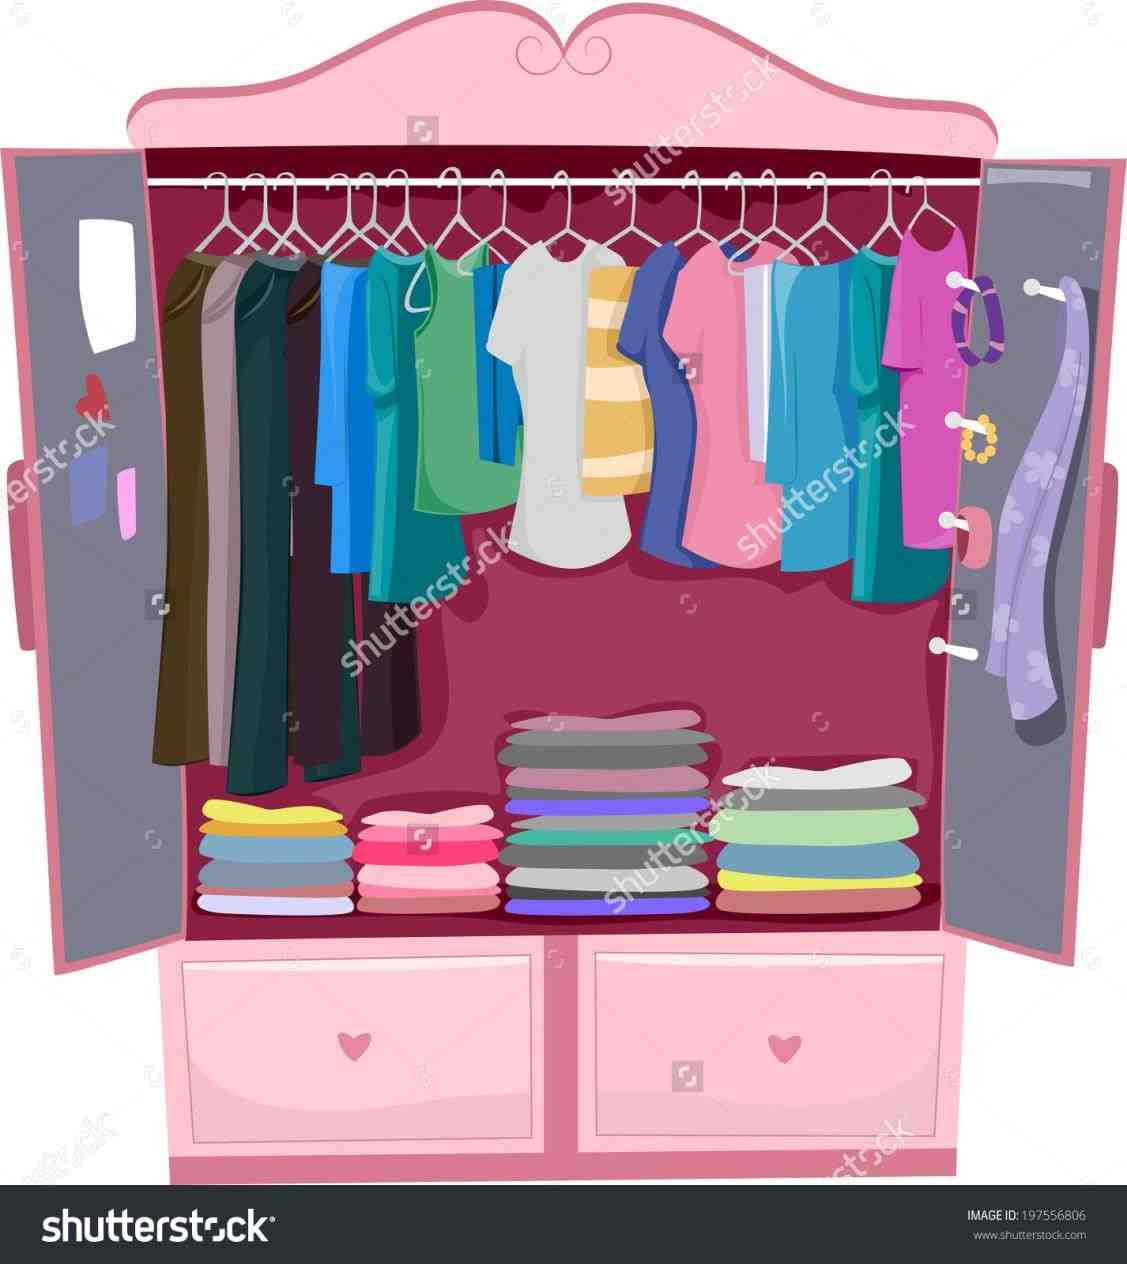 Clothing clipart closet full clothes. Athelred com plastic coat